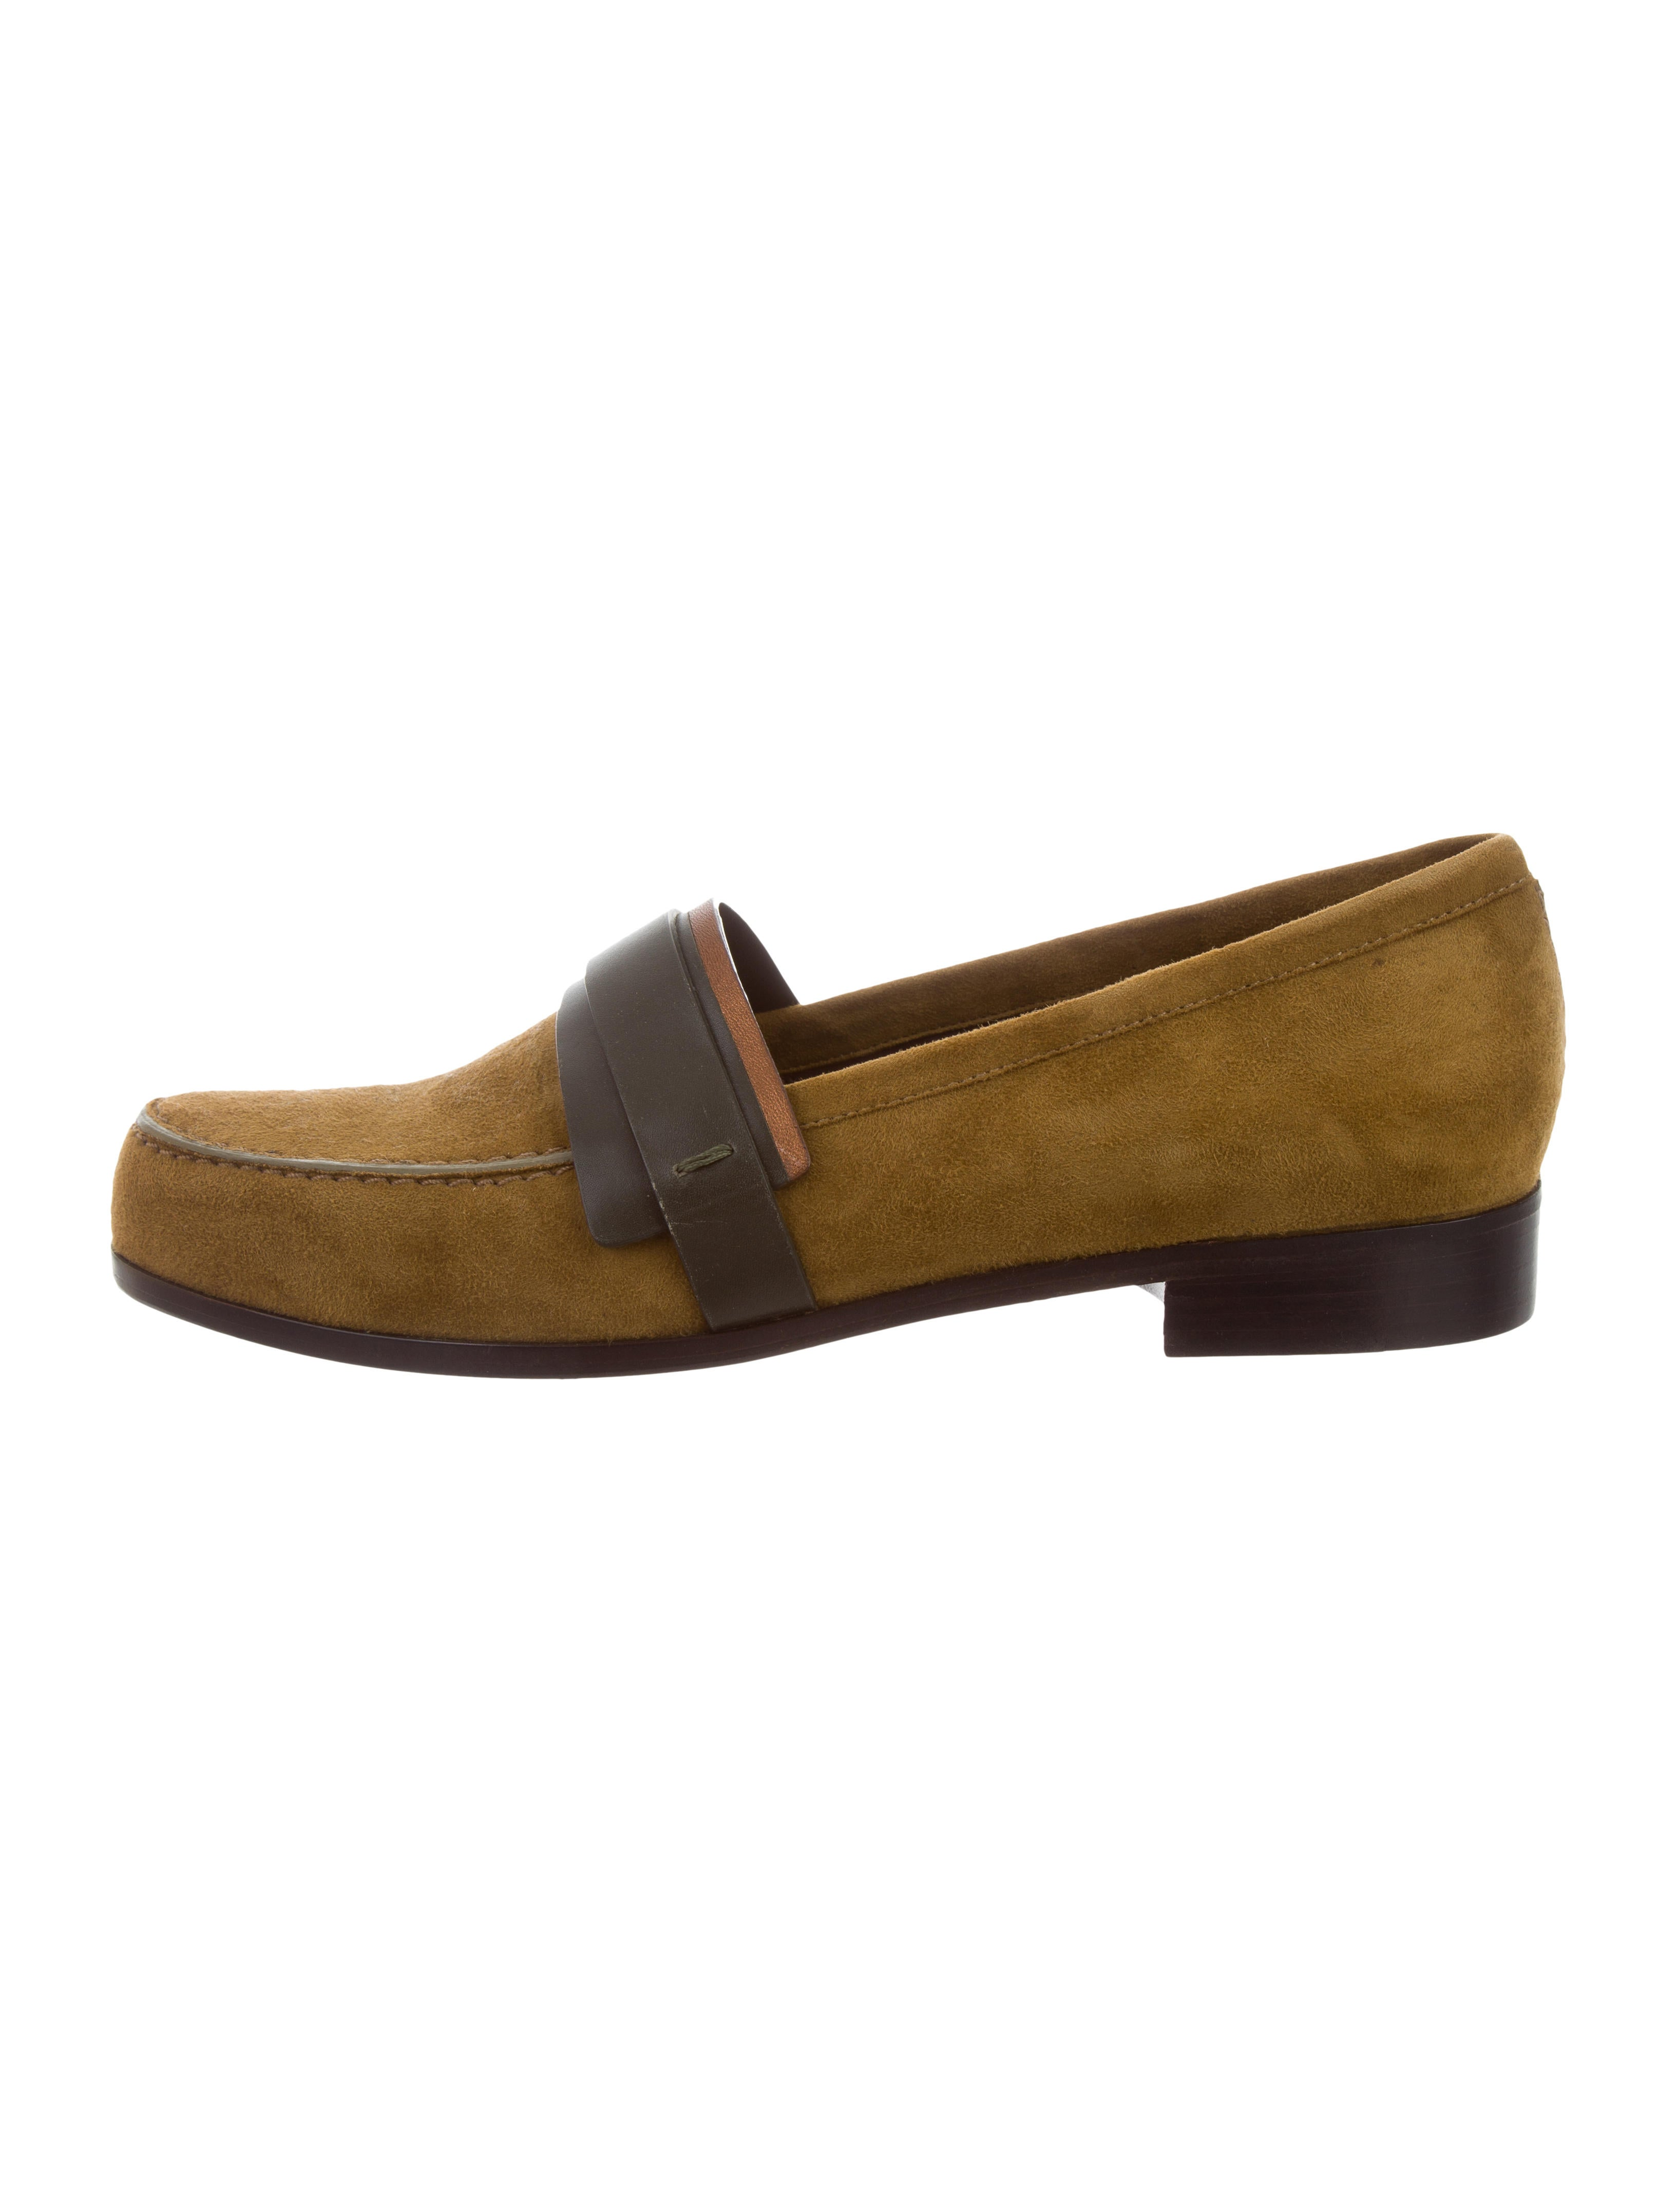 sale choice Carritz Suede Round-Toe Loafers w/ Tags clearance fashionable M9BZqfen